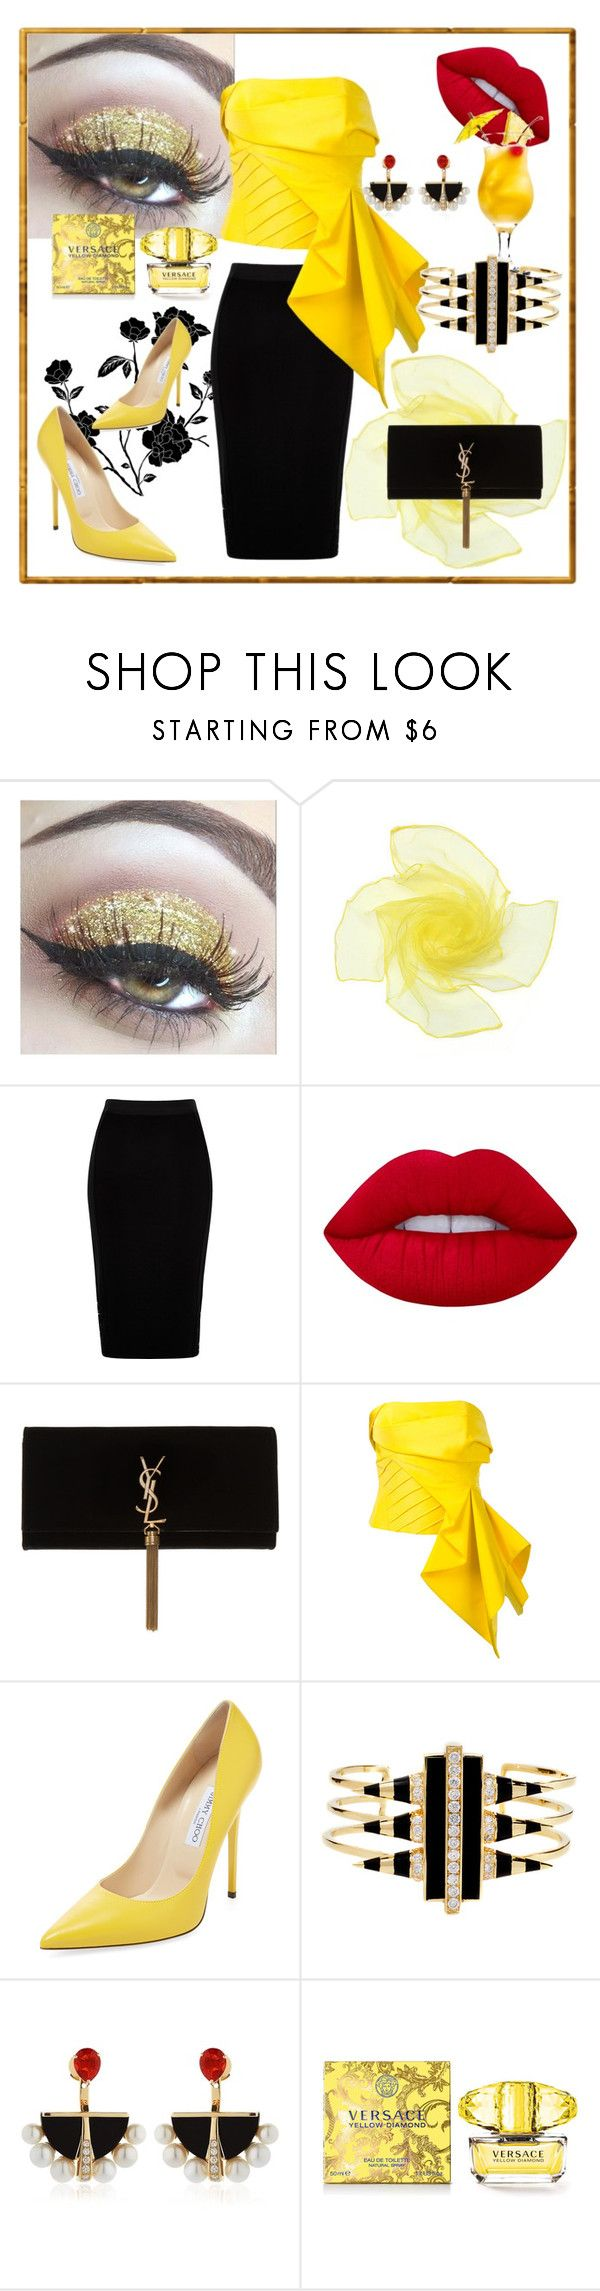 """Untitled #9"" by mirka2011 on Polyvore featuring moda, River Island, Lime Crime, Yves Saint Laurent, Rubin Singer, Jimmy Choo, Noir Jewelry, Lalique i Versace"